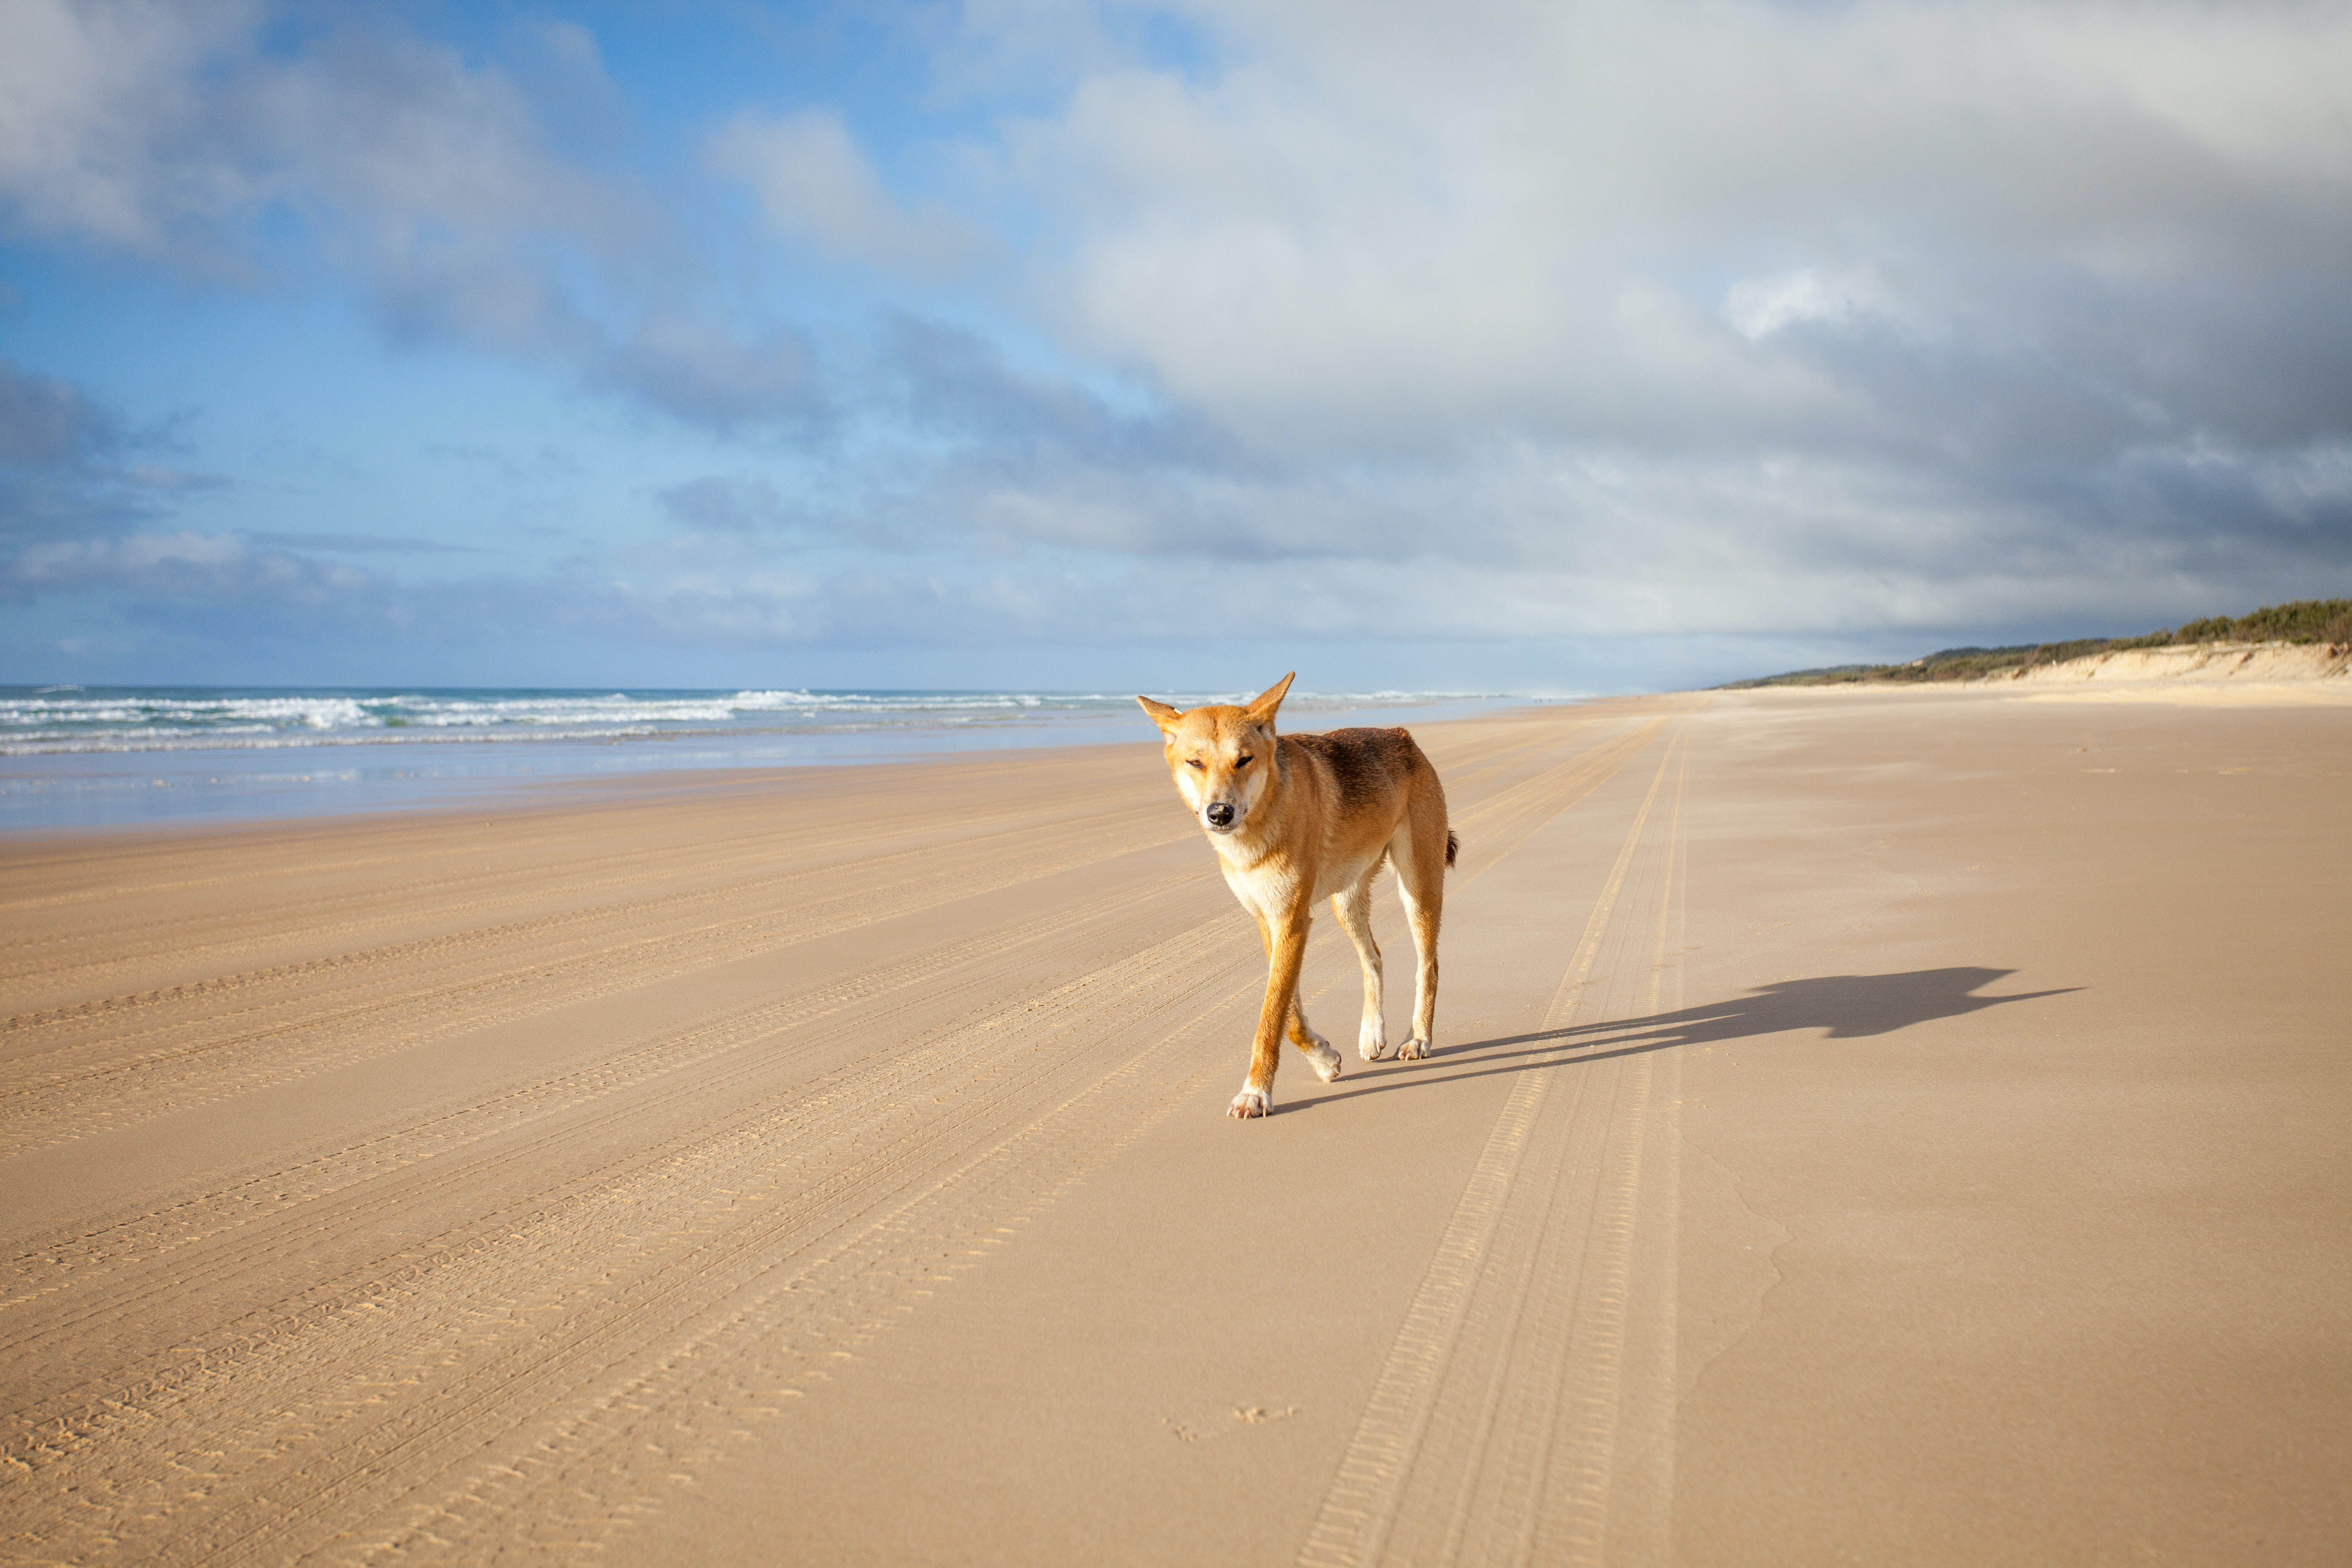 Dingoes and humans were once friends. Separating them could be why they attack